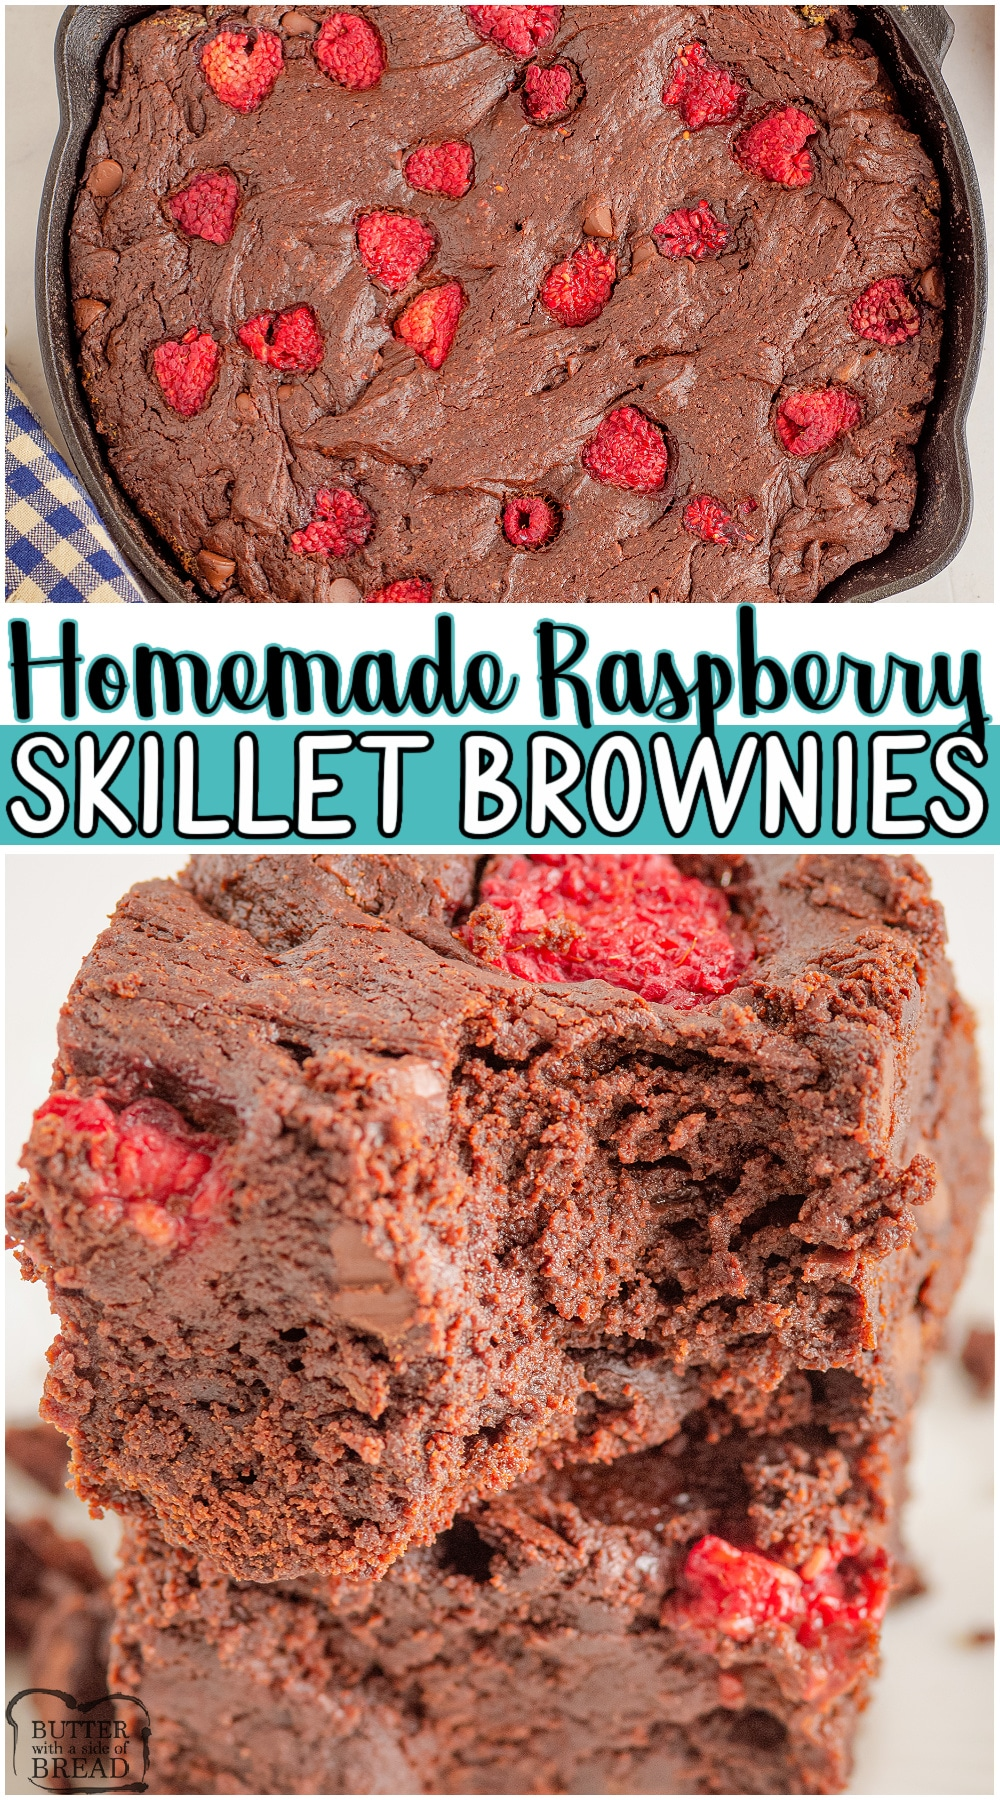 Homemade Raspberry skillet brownies made with classic ingredients for rich, fudgy brownies with fresh raspberries! Classic skillet brownie recipe topped with raspberries for a decadent treat! #brownies #skillet #castiron #raspberries #baking #chocolate #easyrecipe from BUTTER WITH A SIDE OF BREAD